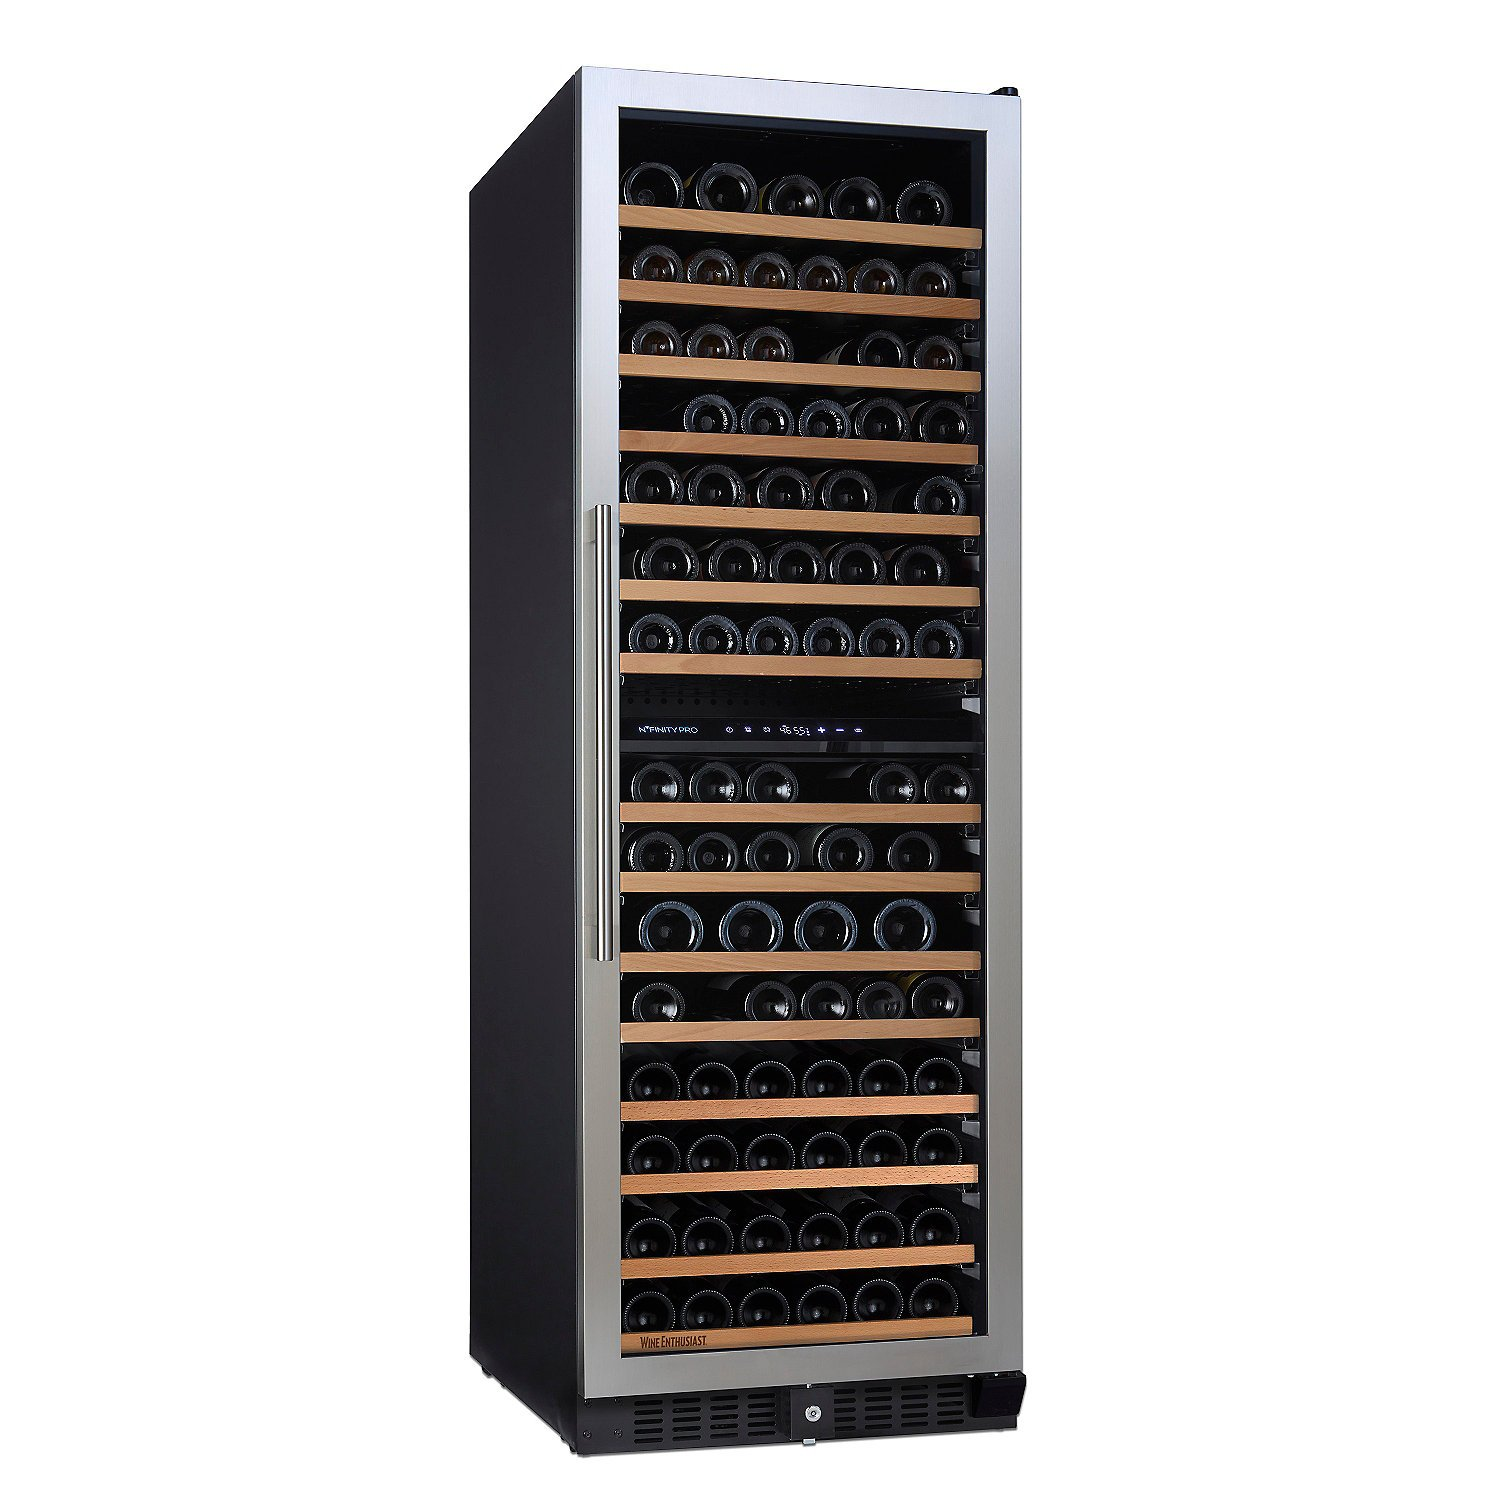 N'FINITY PRO L by Wine Enthusiast – 166 Bottle Dual Zone Built-In/Free-Standing Wine Cellar, Stainless Steel